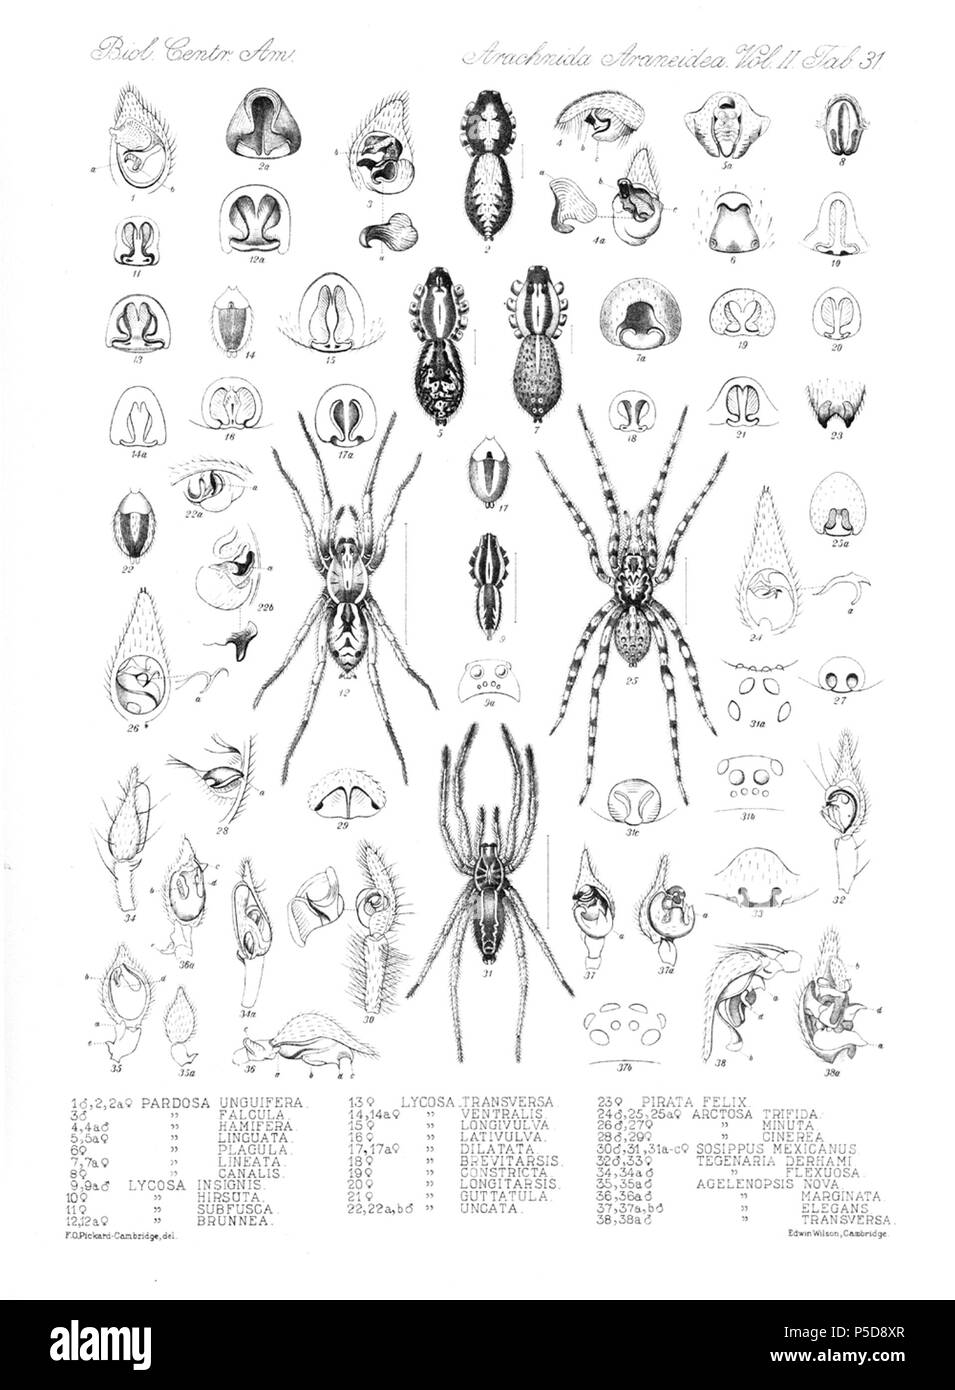 N/A. English: Zoological illustrations of spiders made by Frederick O. Picard-Cambridge for the Biologia Centrali-Americana, an encyclopedia of the natural history of Mexico and Central America . between 1897 and 1905. Frederick Octavius Pickard-Cambridge 116 Arachnida Araneidea Vol 2 Table 31 - Stock Image